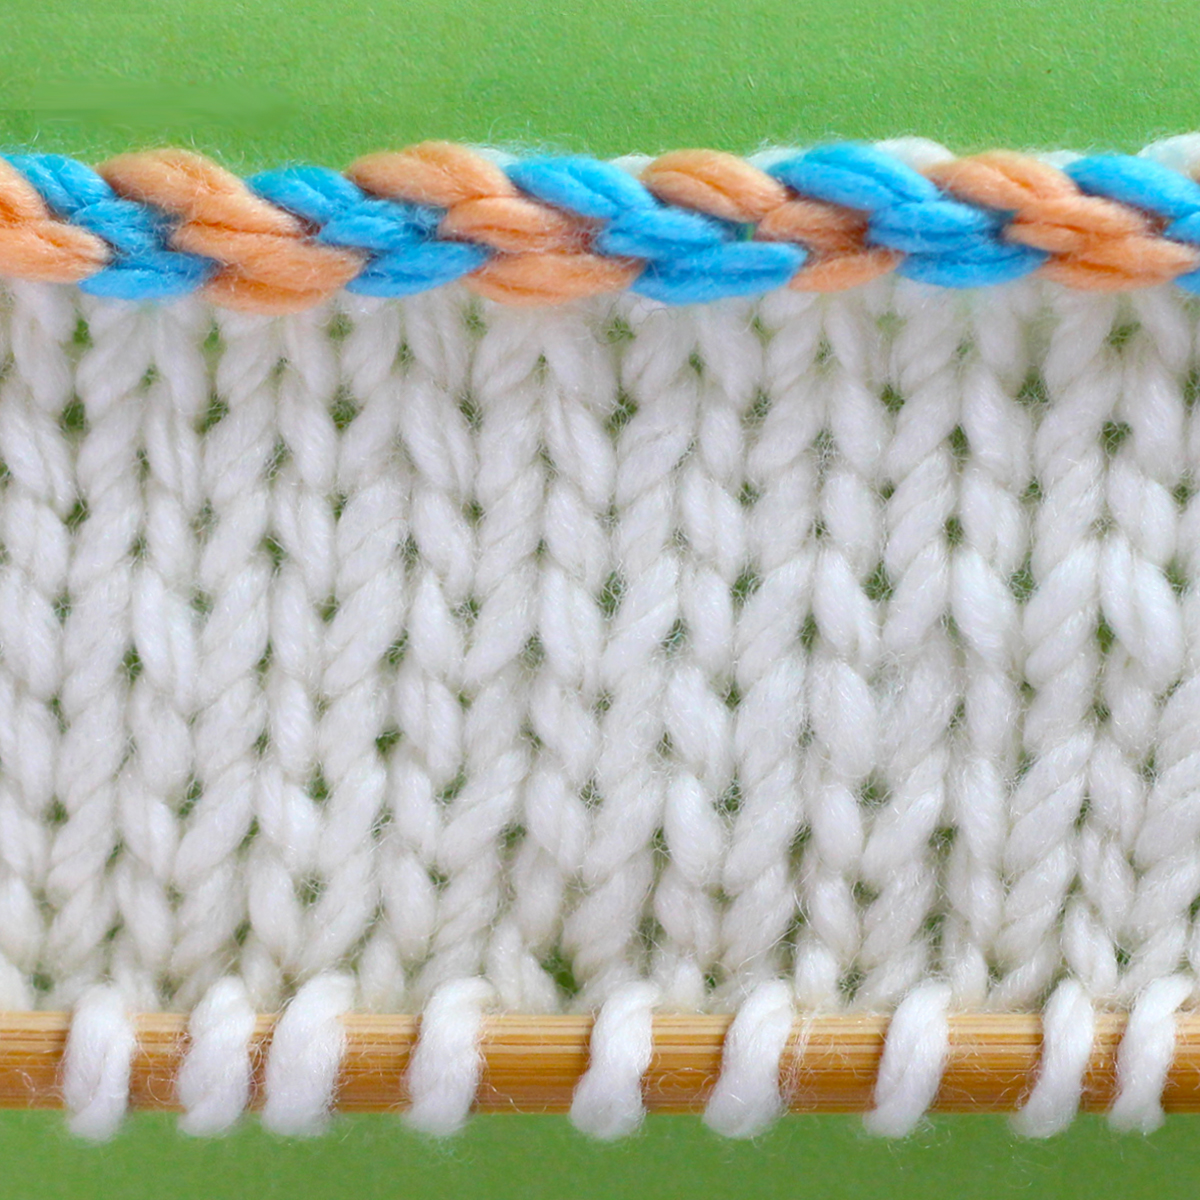 Knitted Swatch of stockinette with the edge in a 2-color braided cast on technique.